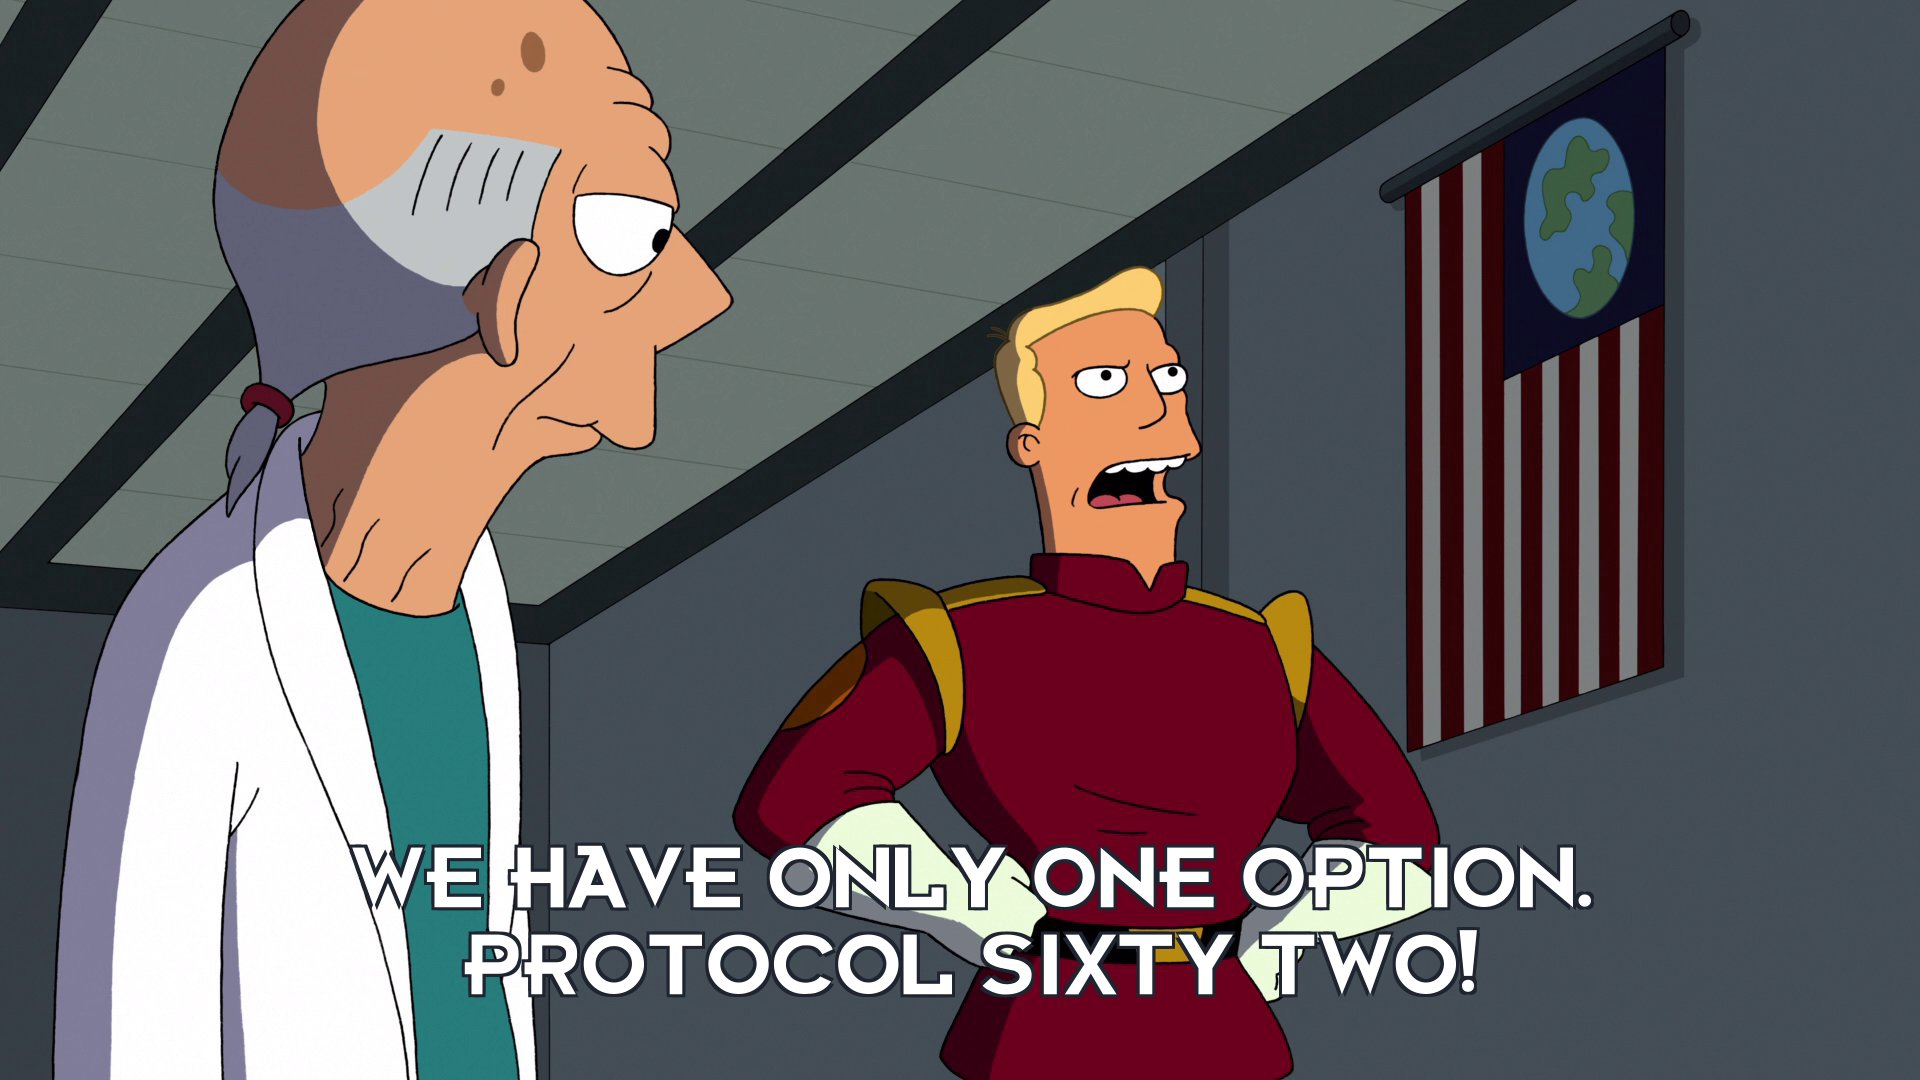 Zapp Brannigan: We have only one option. Protocol sixty two!